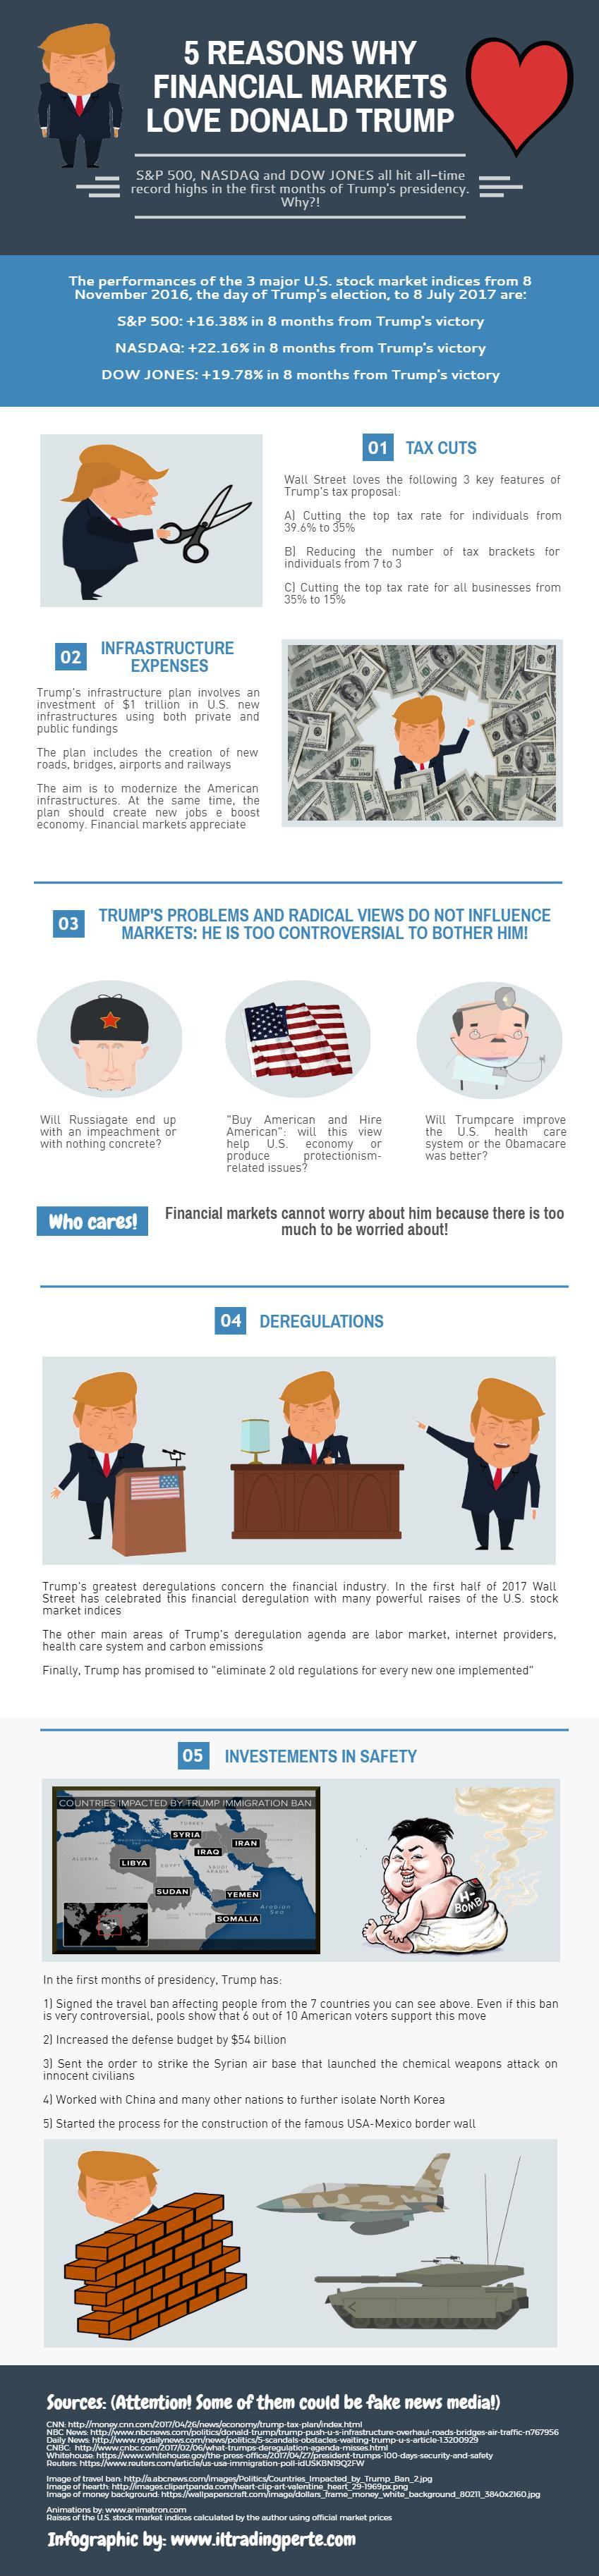 Trump and Finances infographic